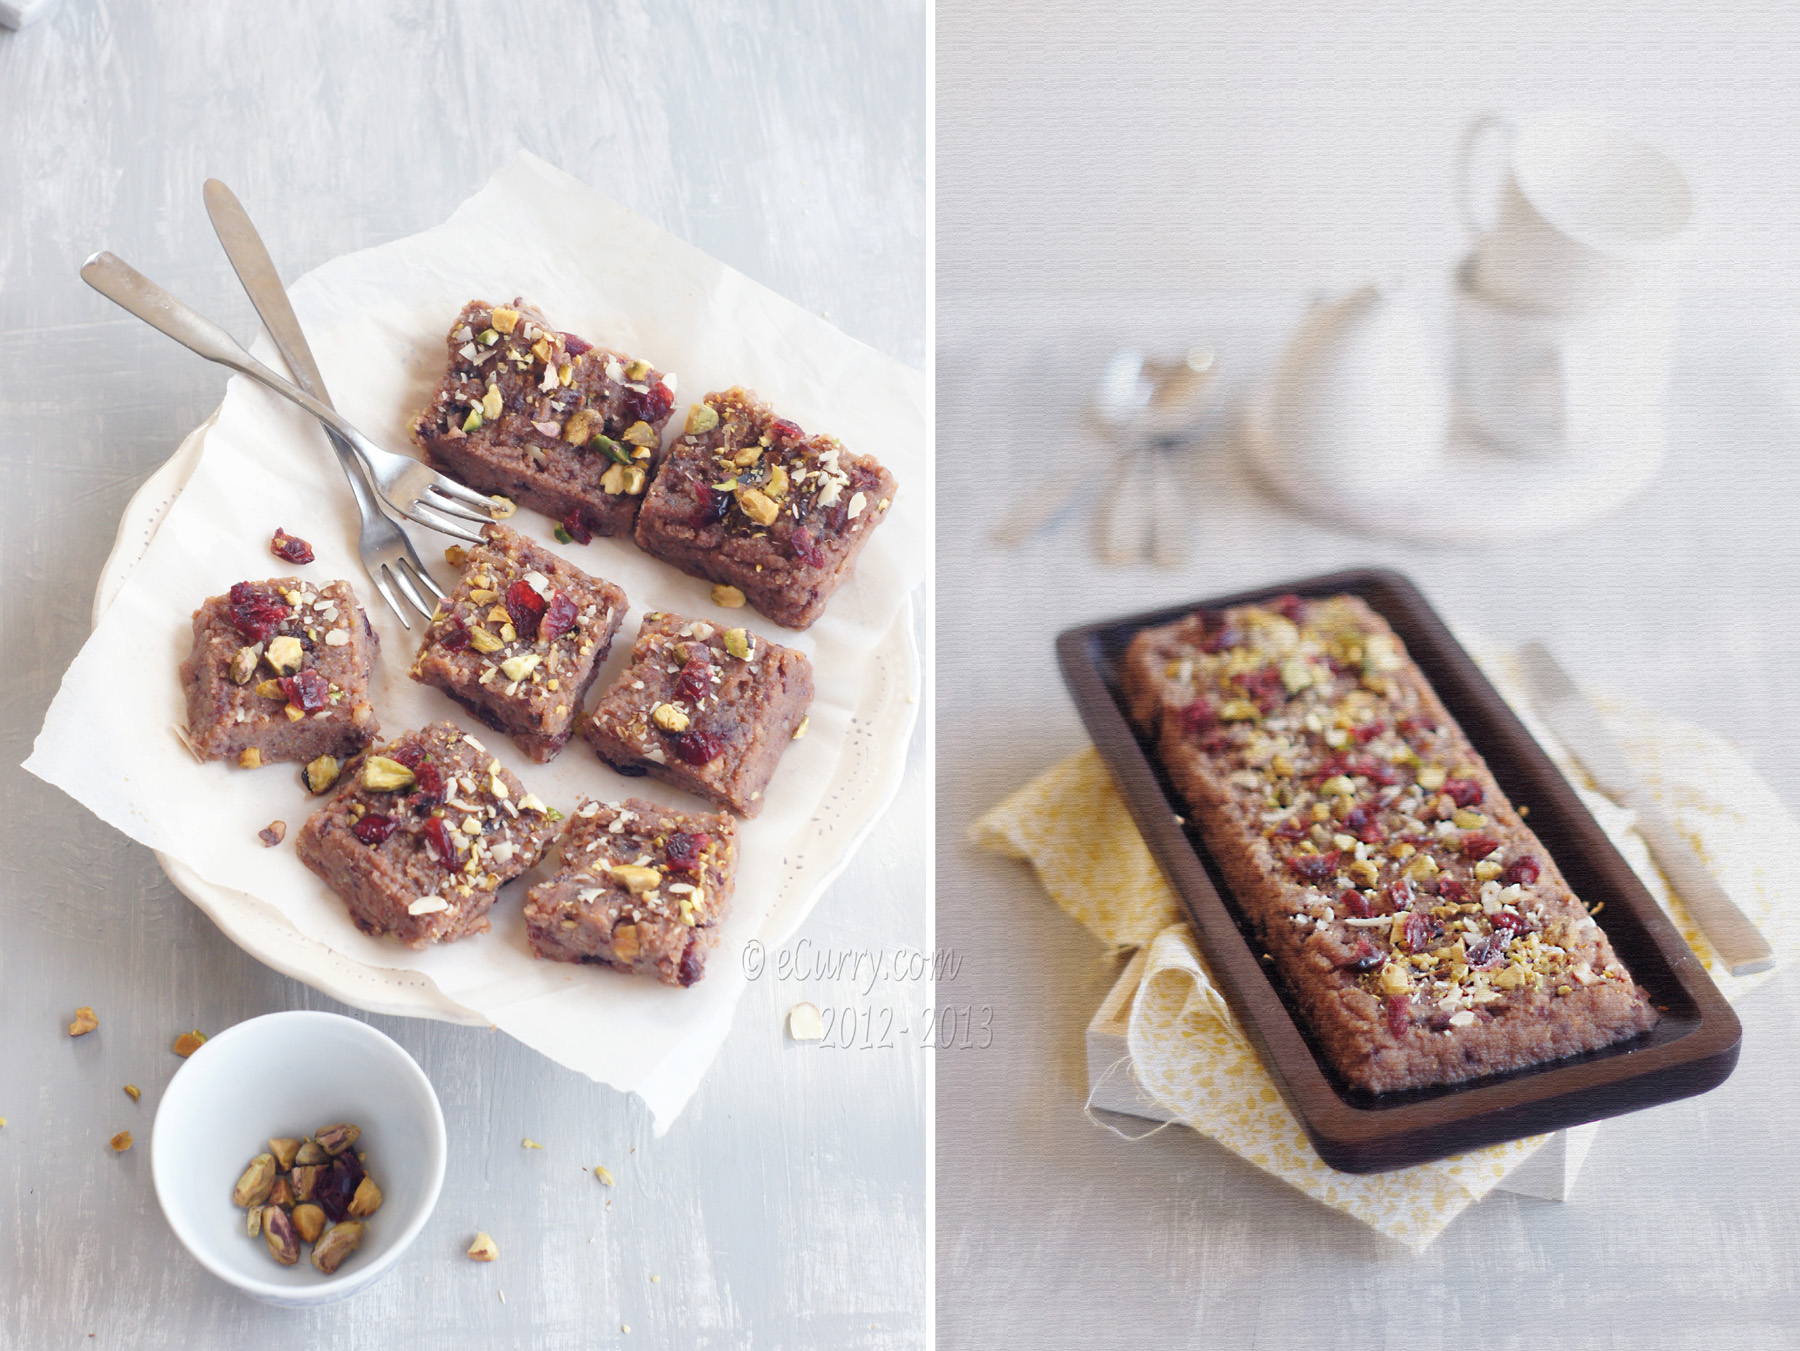 Ricotta Fudge with Dried Fruits, Nuts and Chocolate | eCurry - The ...